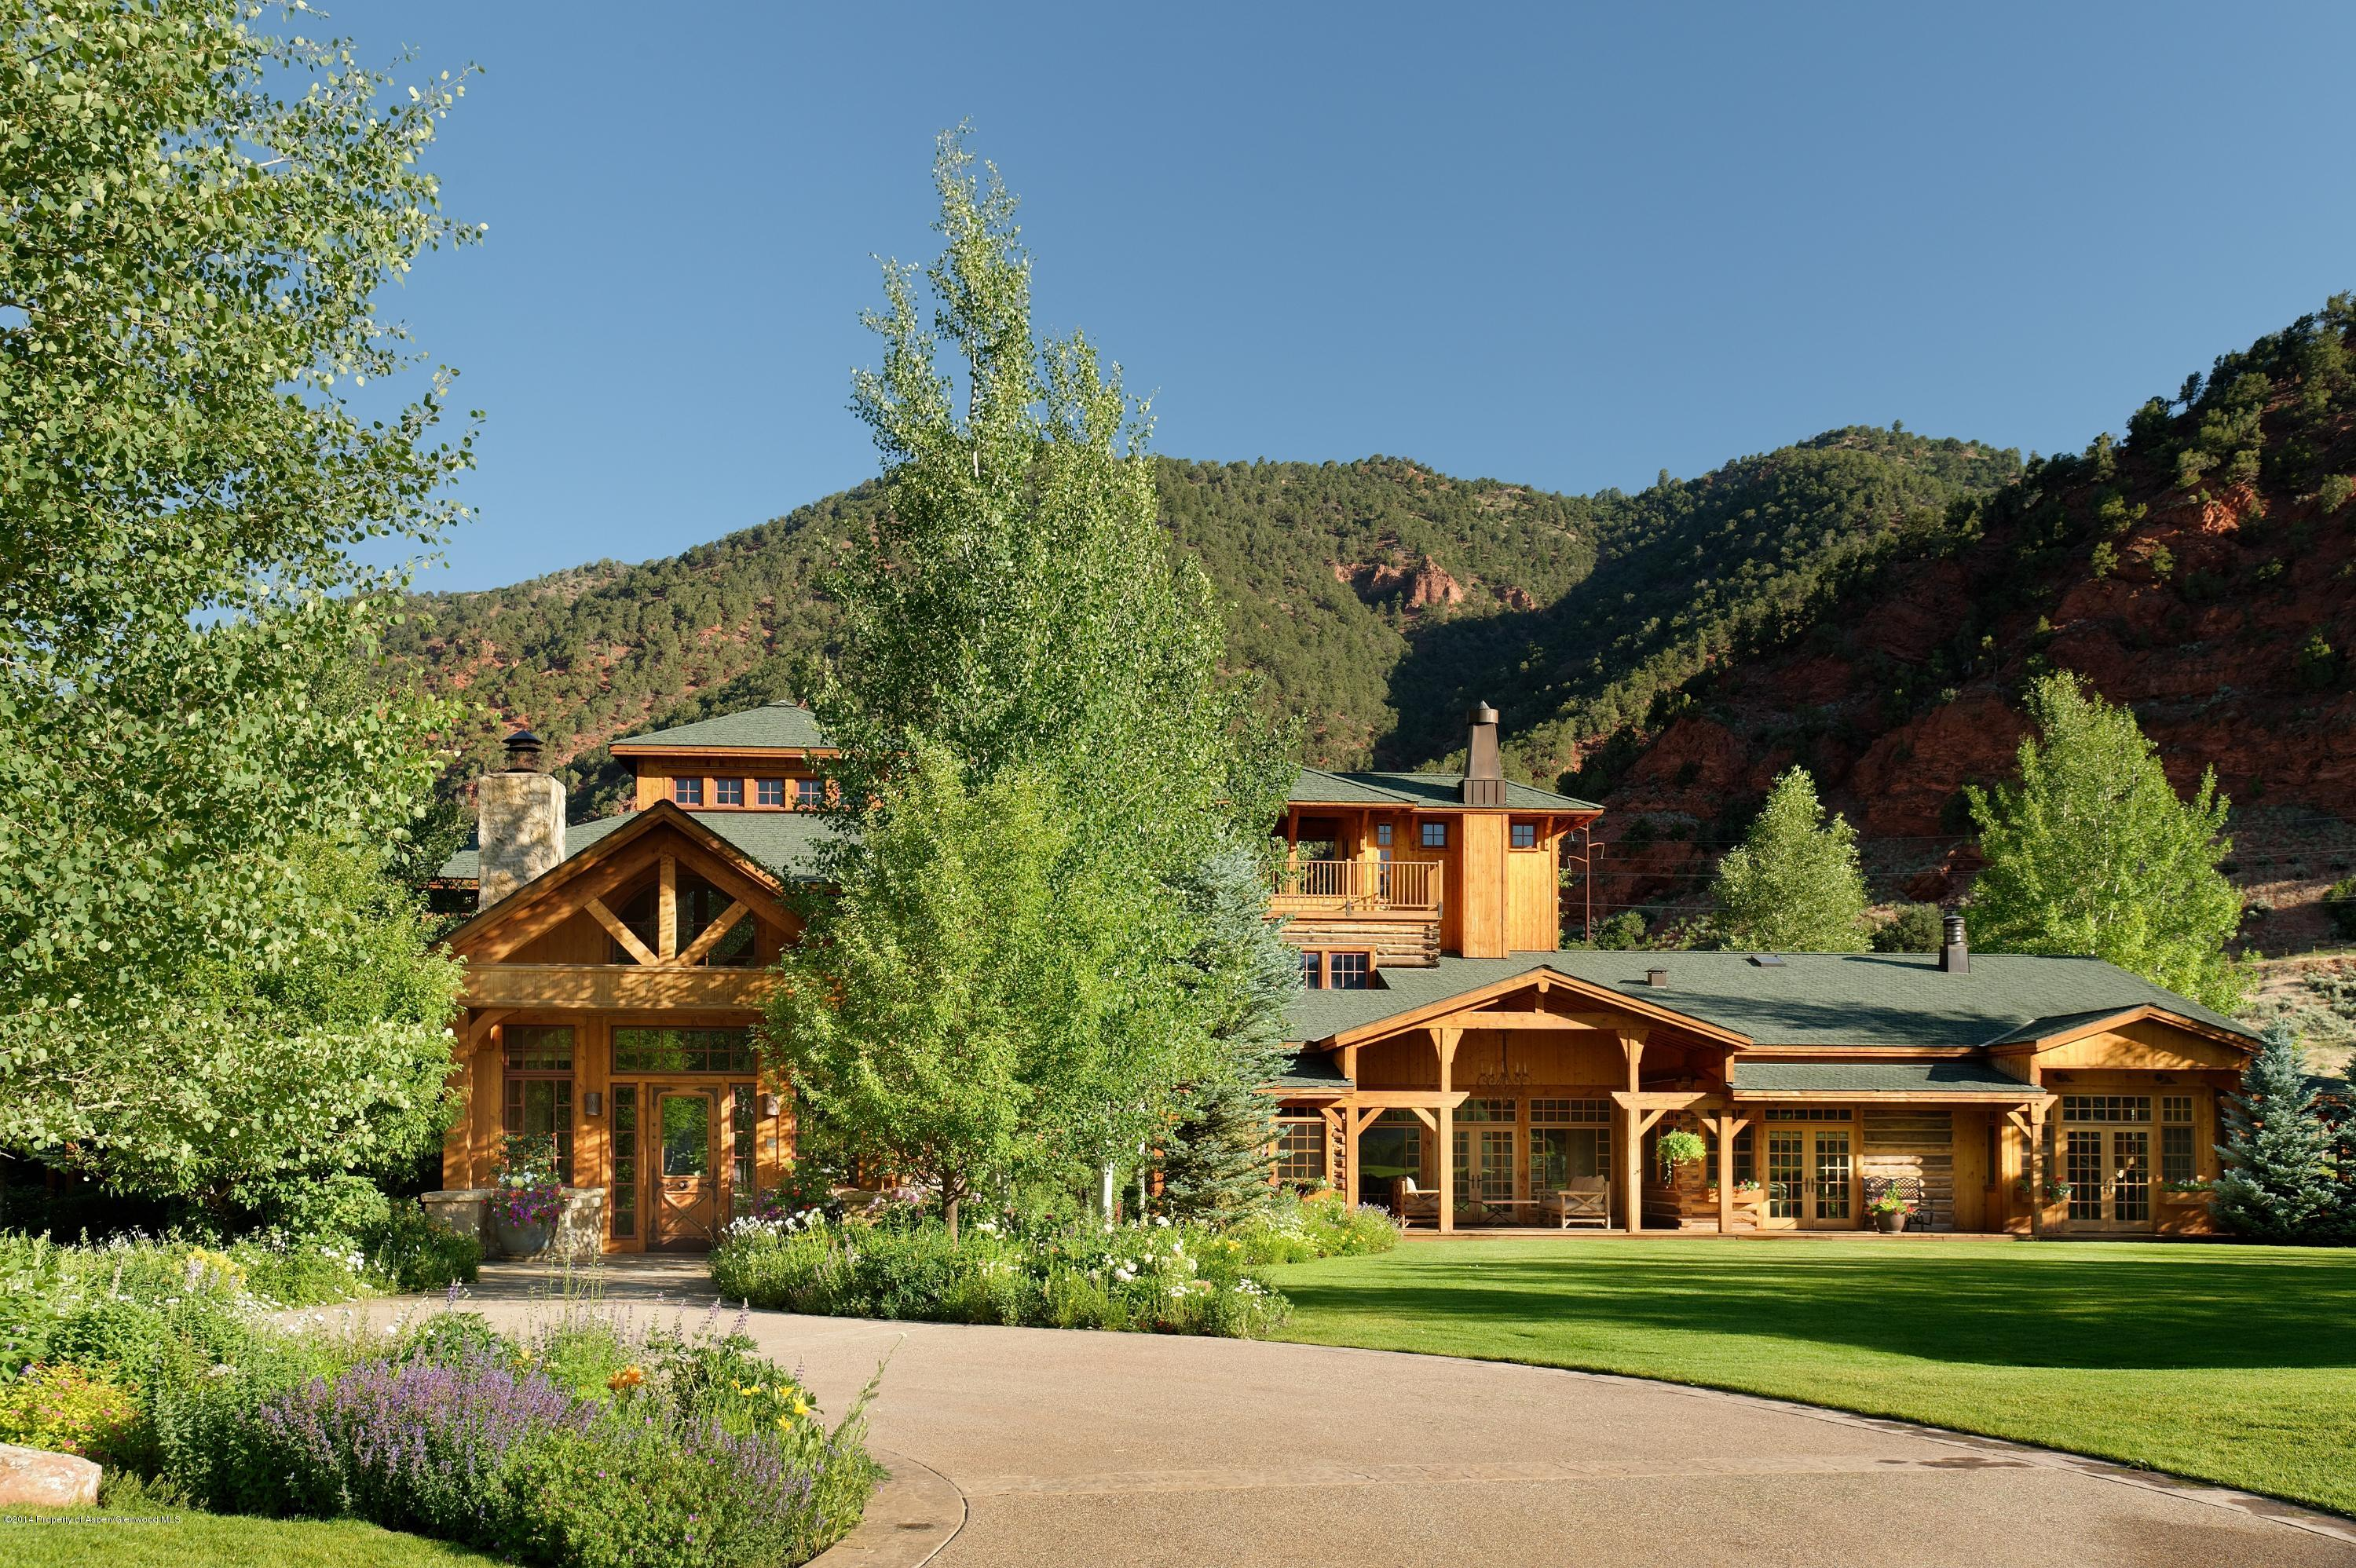 MLS# 135595 - 42 - 50 E River Ranch Road, Snowmass, CO 81654